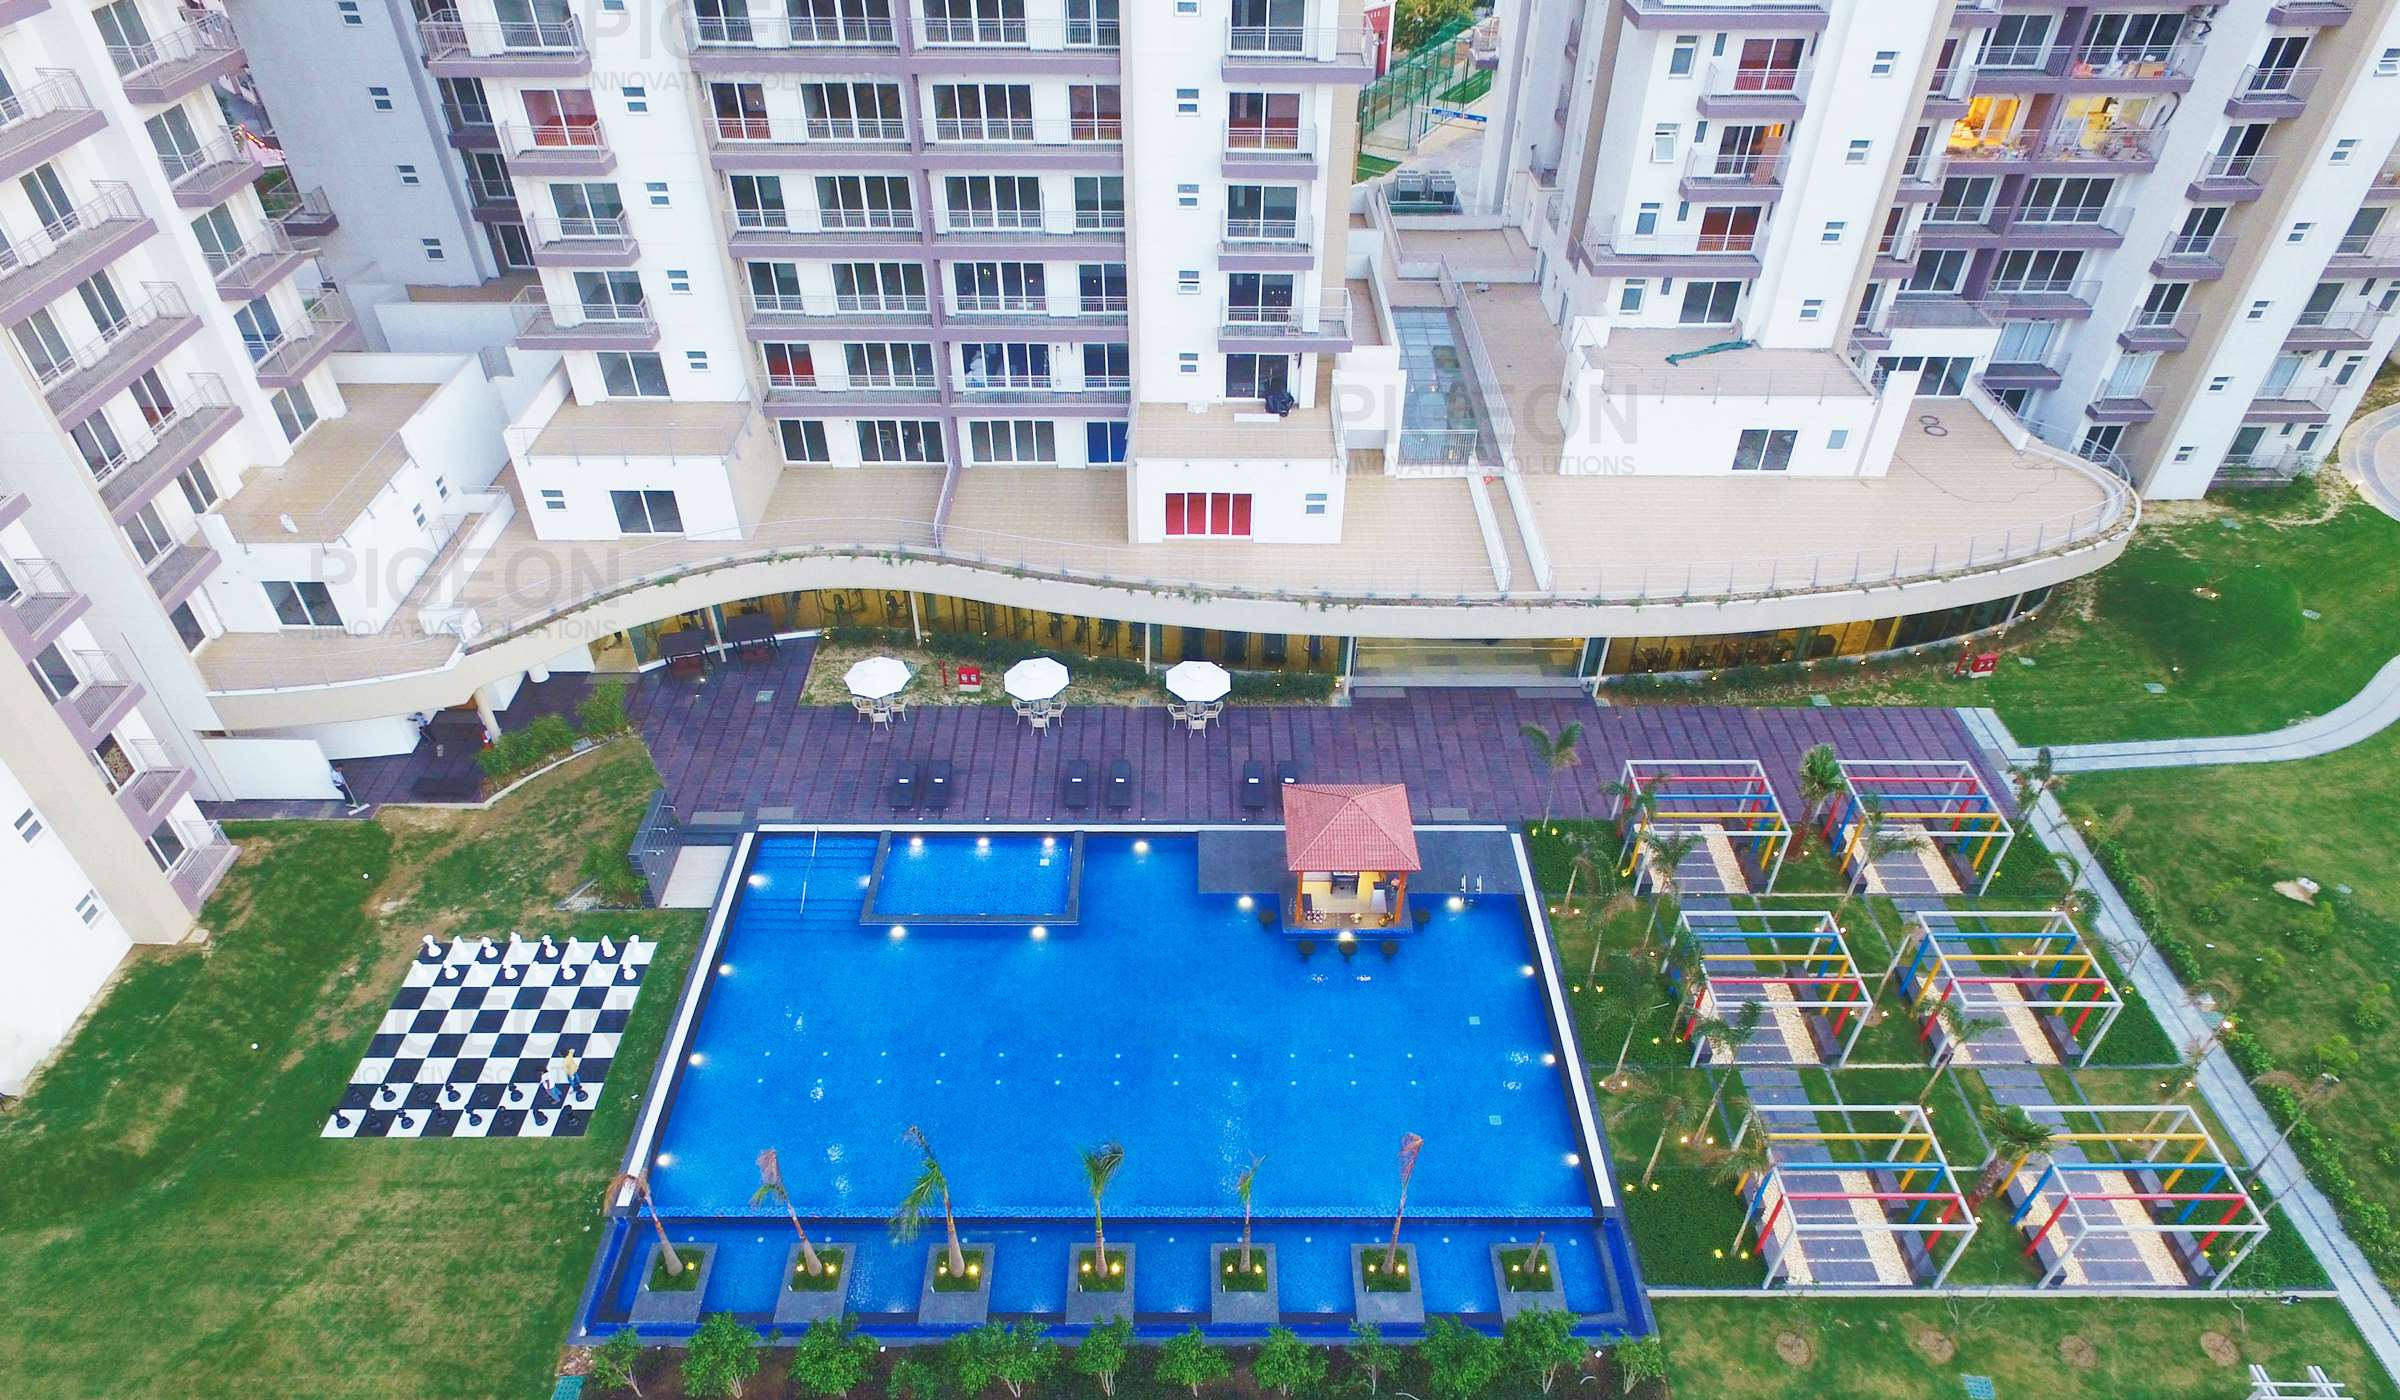 real estate aerial photography company in india - Pigeon